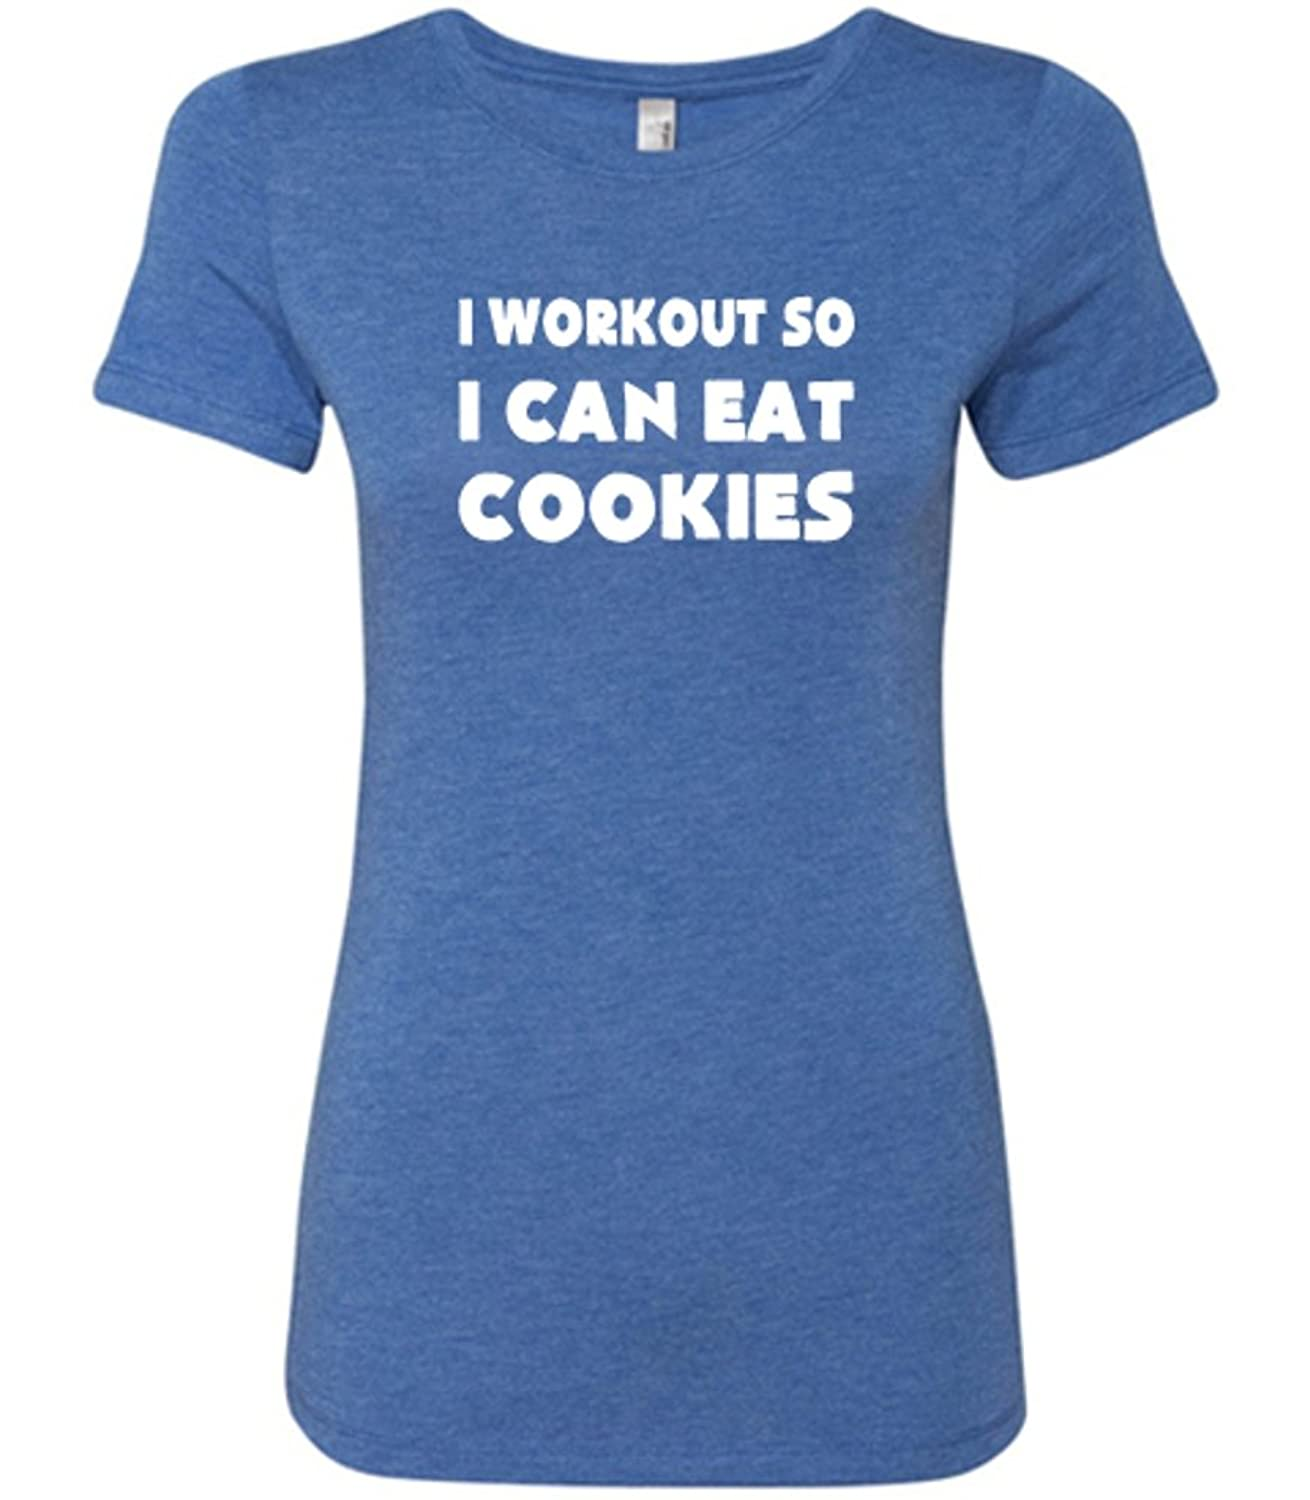 Constantly Varied Women's I Workout So I Can Eat Cookies Shirt